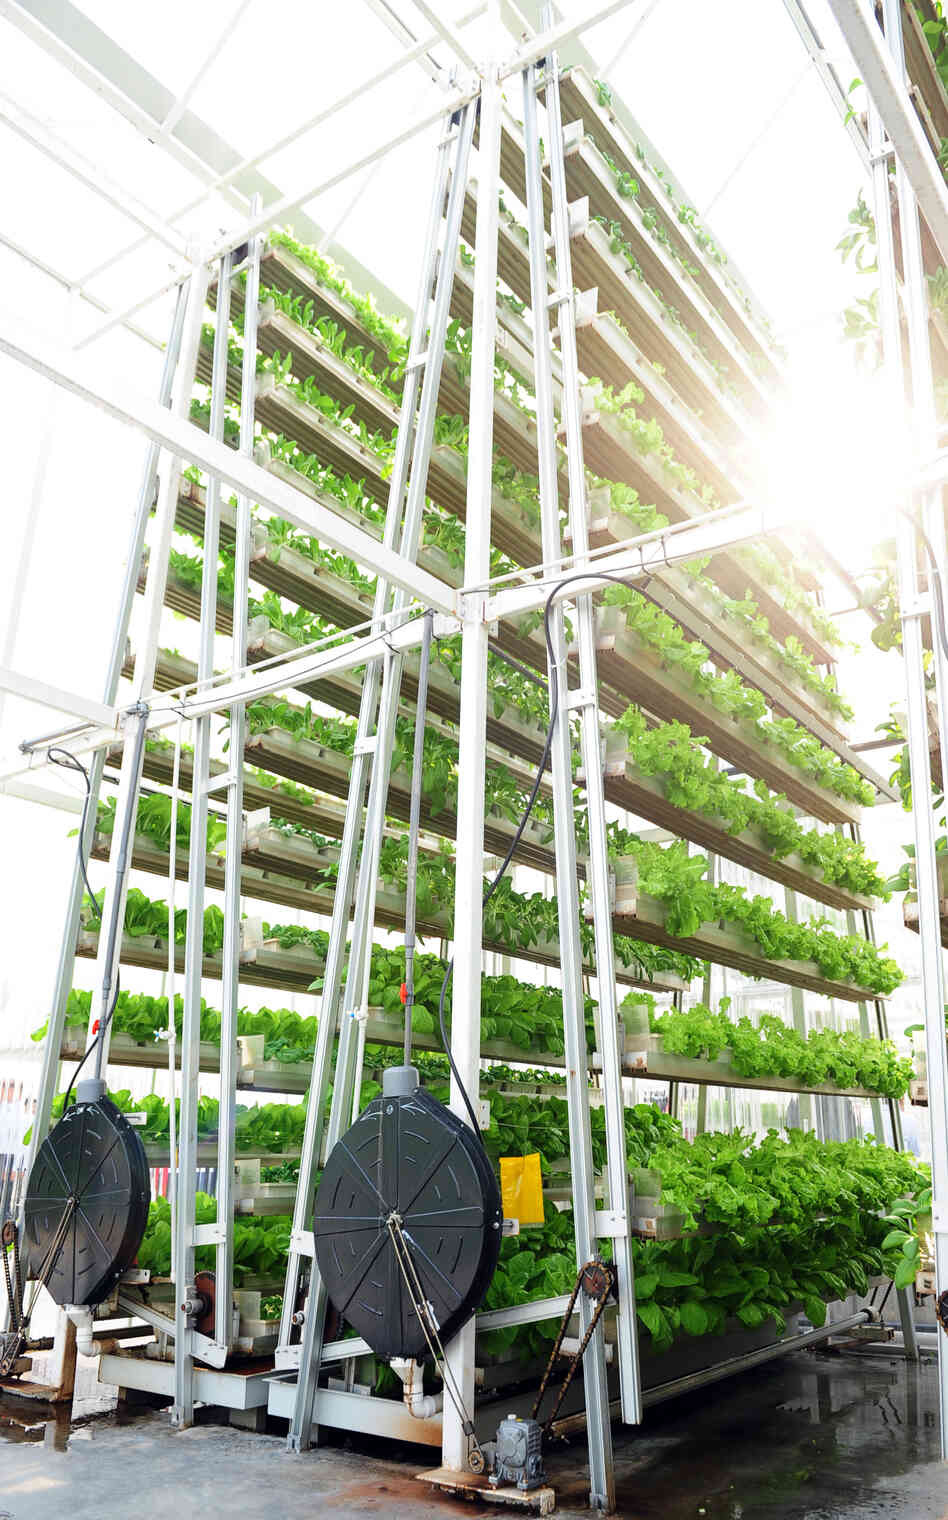 Sky High Vegetables Vertical Farming Sprouts In Singapore